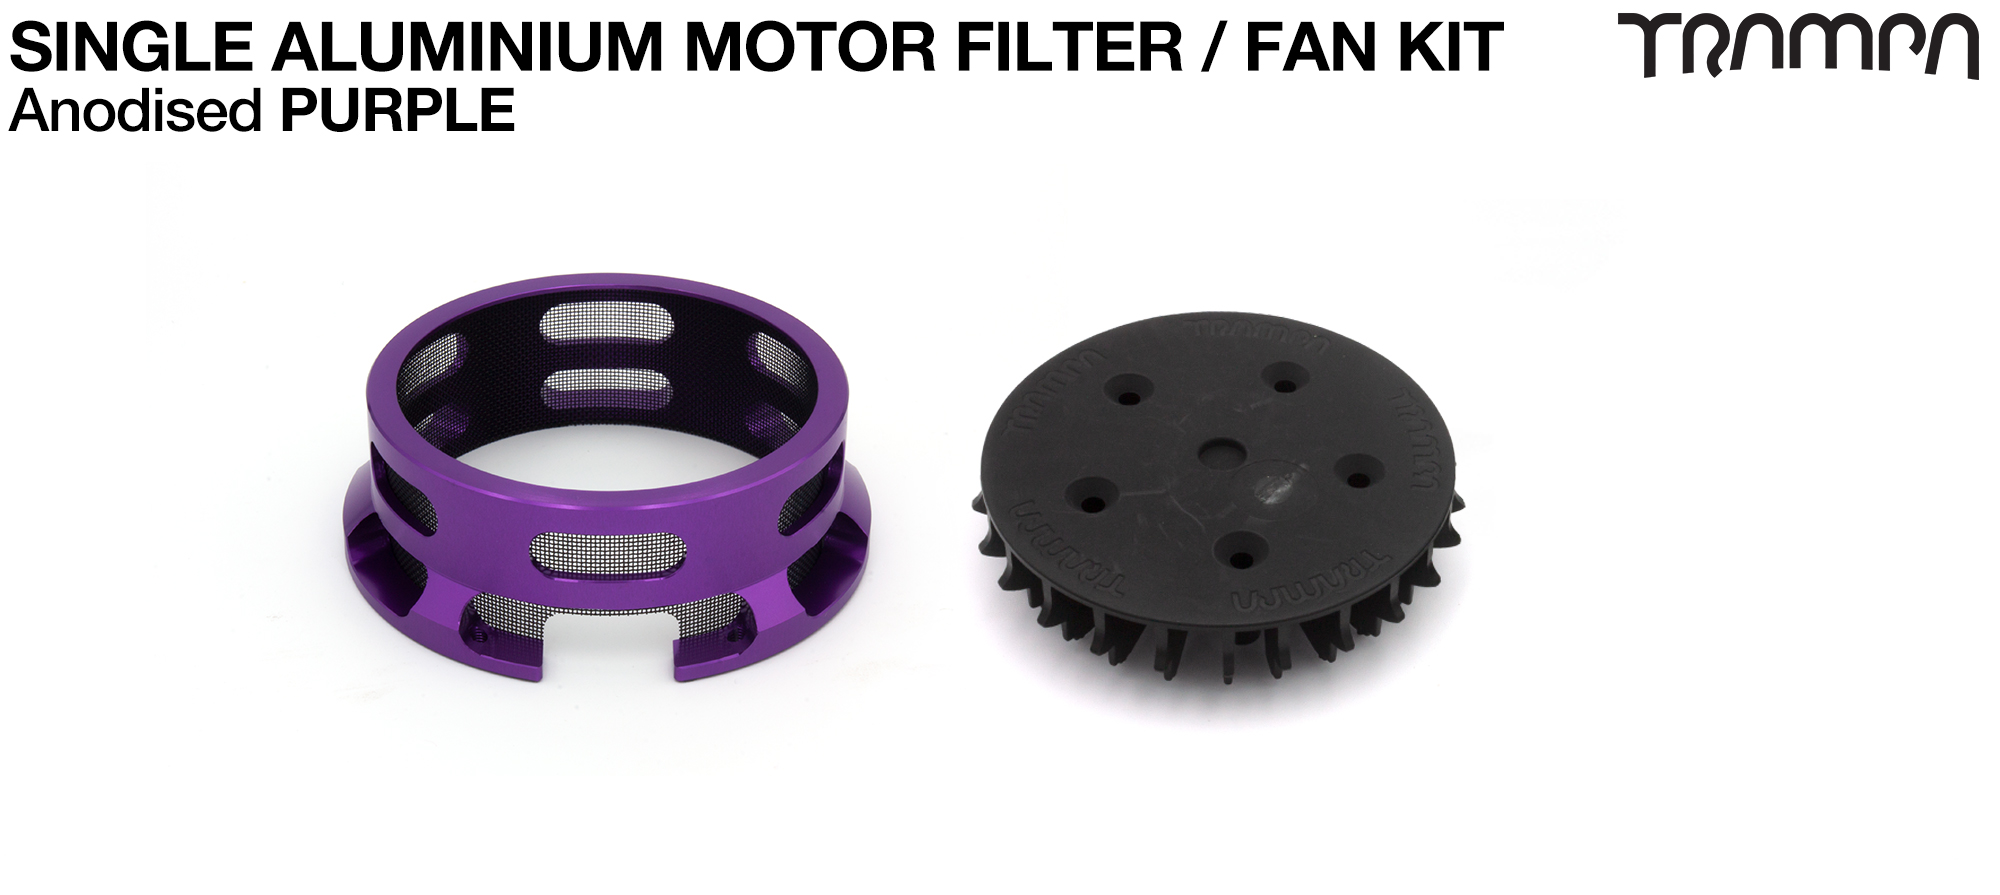 14FiFties BLACK Motor protection Housing with PURPLE particle Filter & Fan - SINGLE